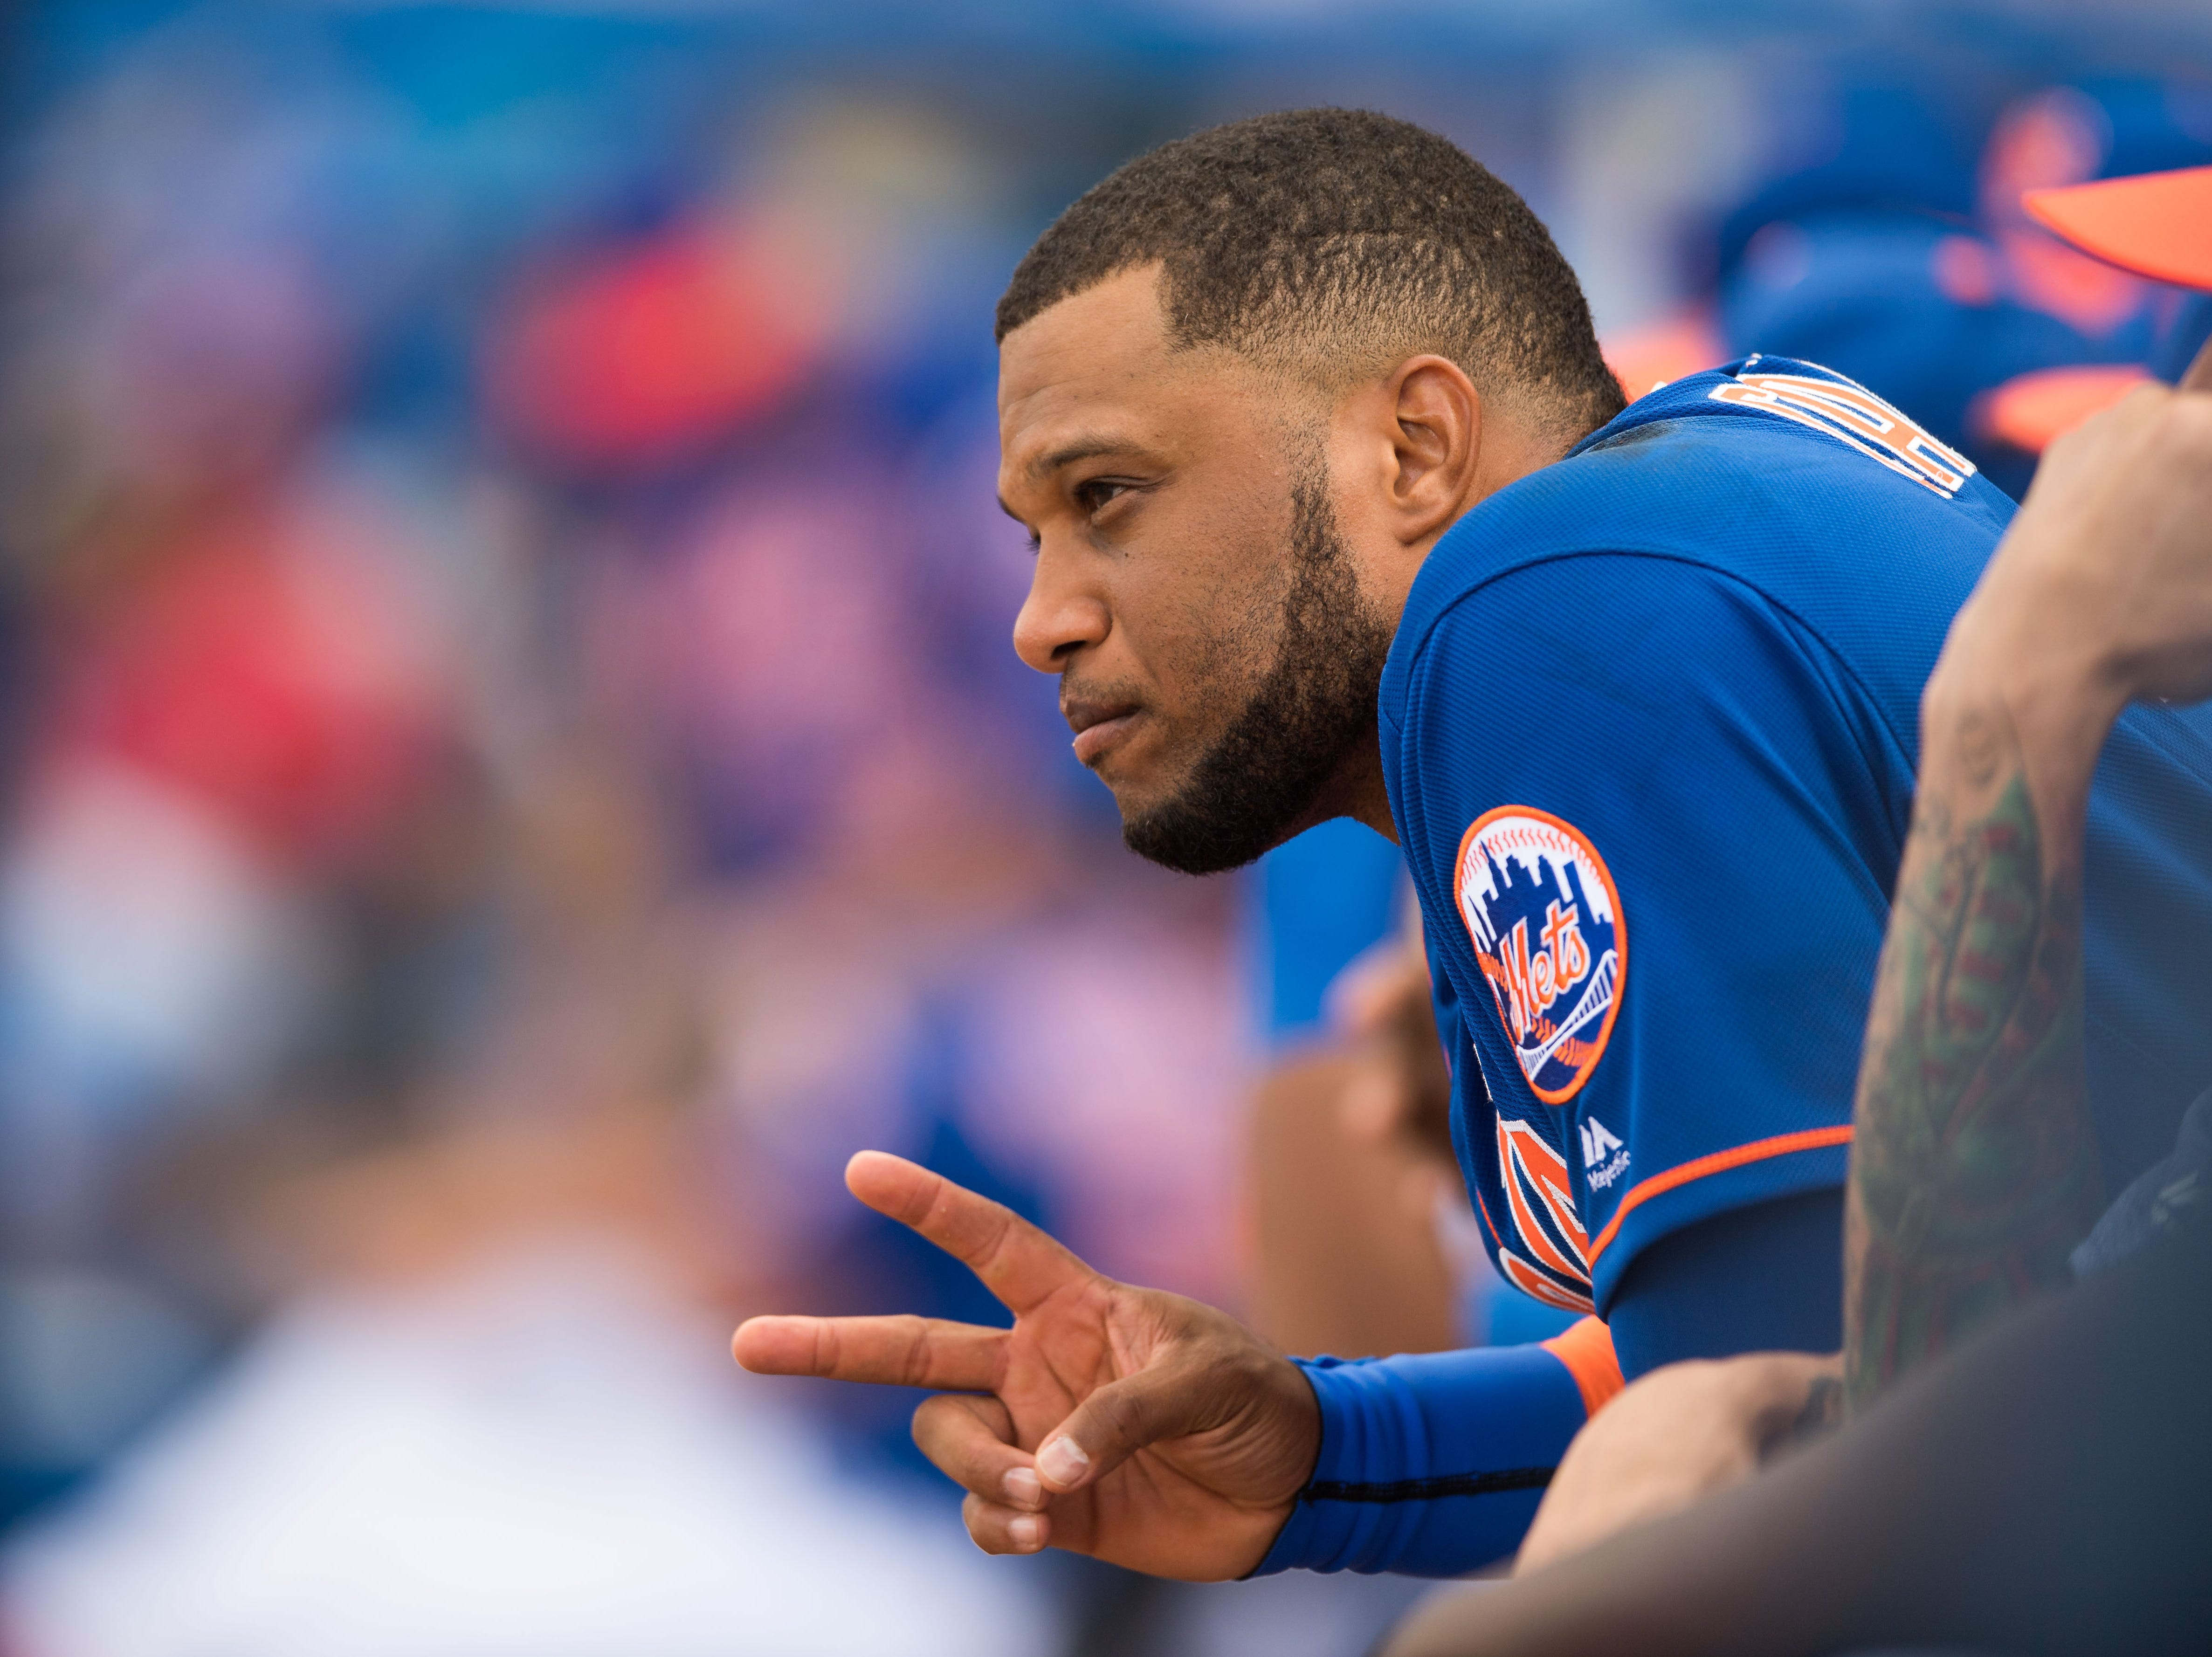 New York Mets infielder Robinson Canó is photographed in the home dugout between innings against the Atlanta Braves during their first spring training game Saturday, Feb. 23, 2019, at First Data Field in Port St. Lucie.